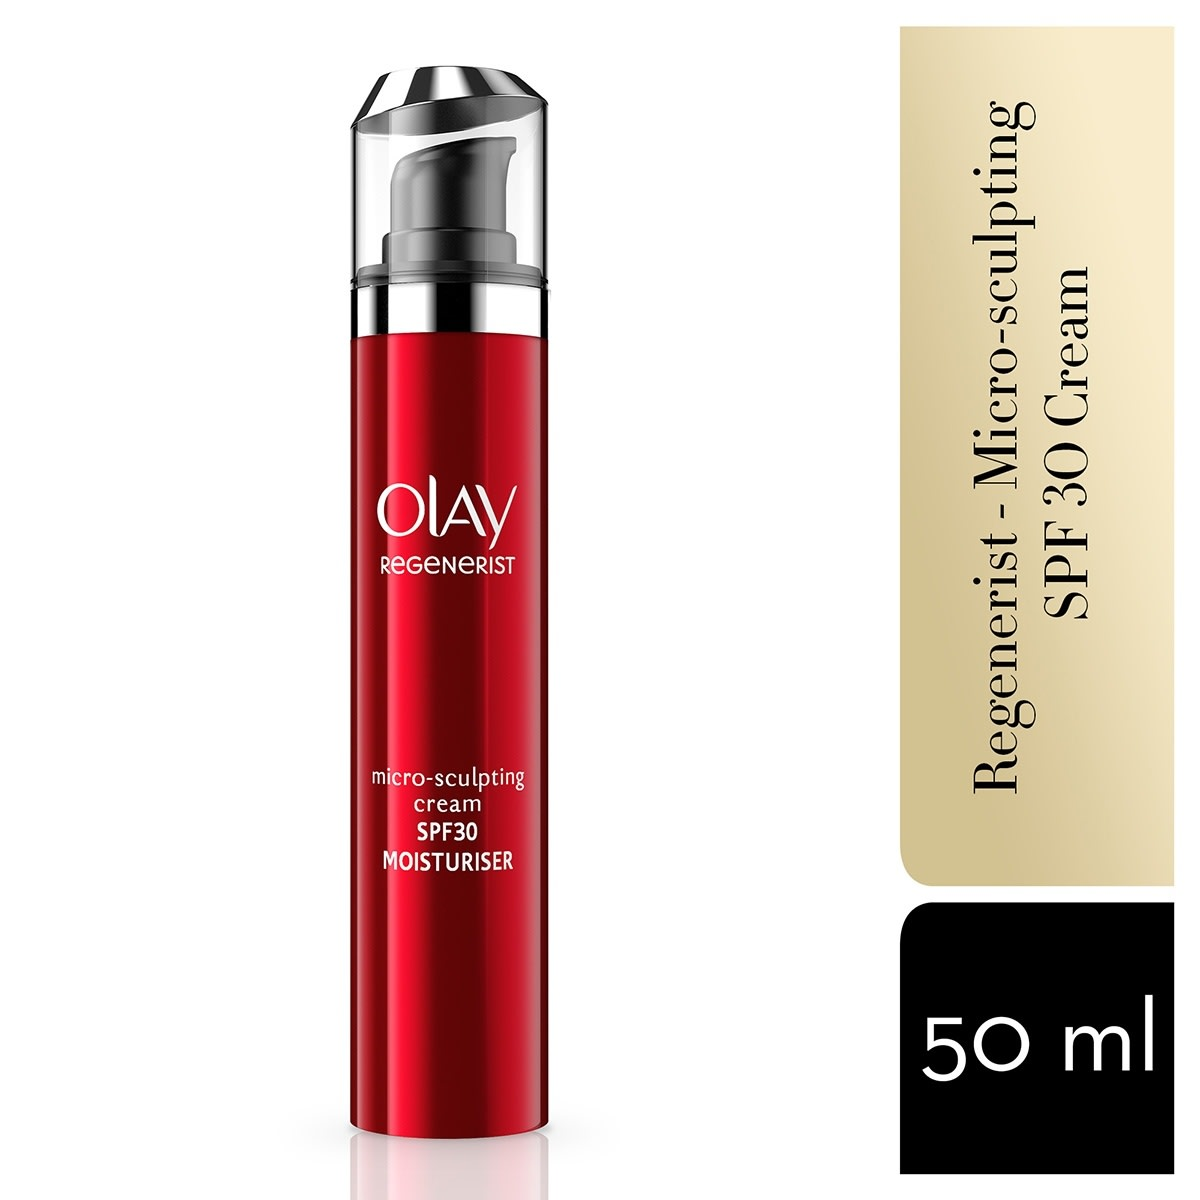 Olay Regenerist Micro-Sculpting Super Firming Cream SPF30 50 ml